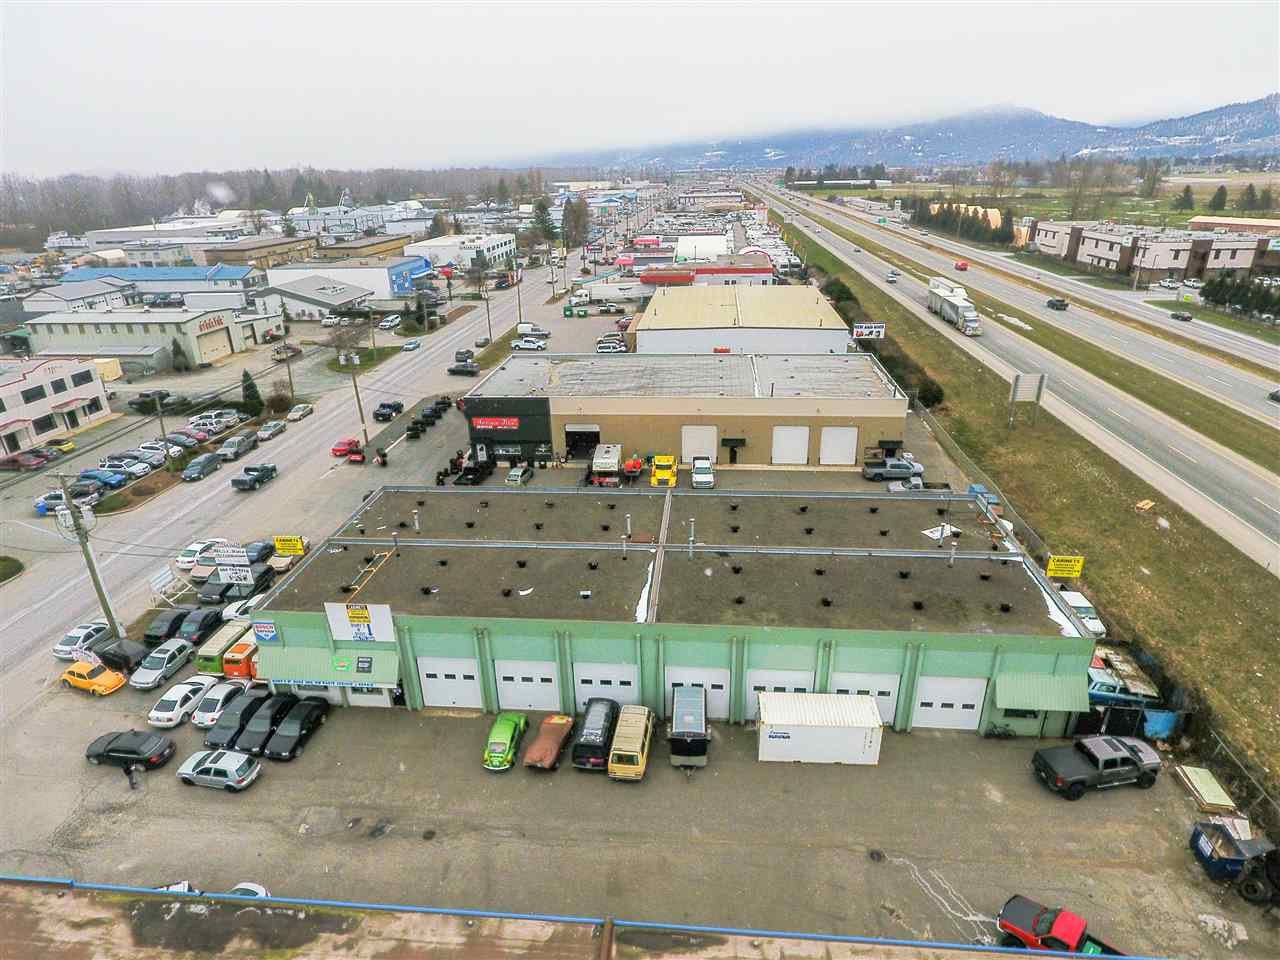 Rare offering! Detached stand alone industrial building offering 10,660 sq.ft! Large half acre lot with outstanding highway exposure and proximity to downtown Chilliwack. Currently separated into 4 warehouse spaces (non-strata) of almost 2,700 sq.ft each. 4 Long term tenants on month-to-month tenancies. Loads of upside here! Contact for more details.